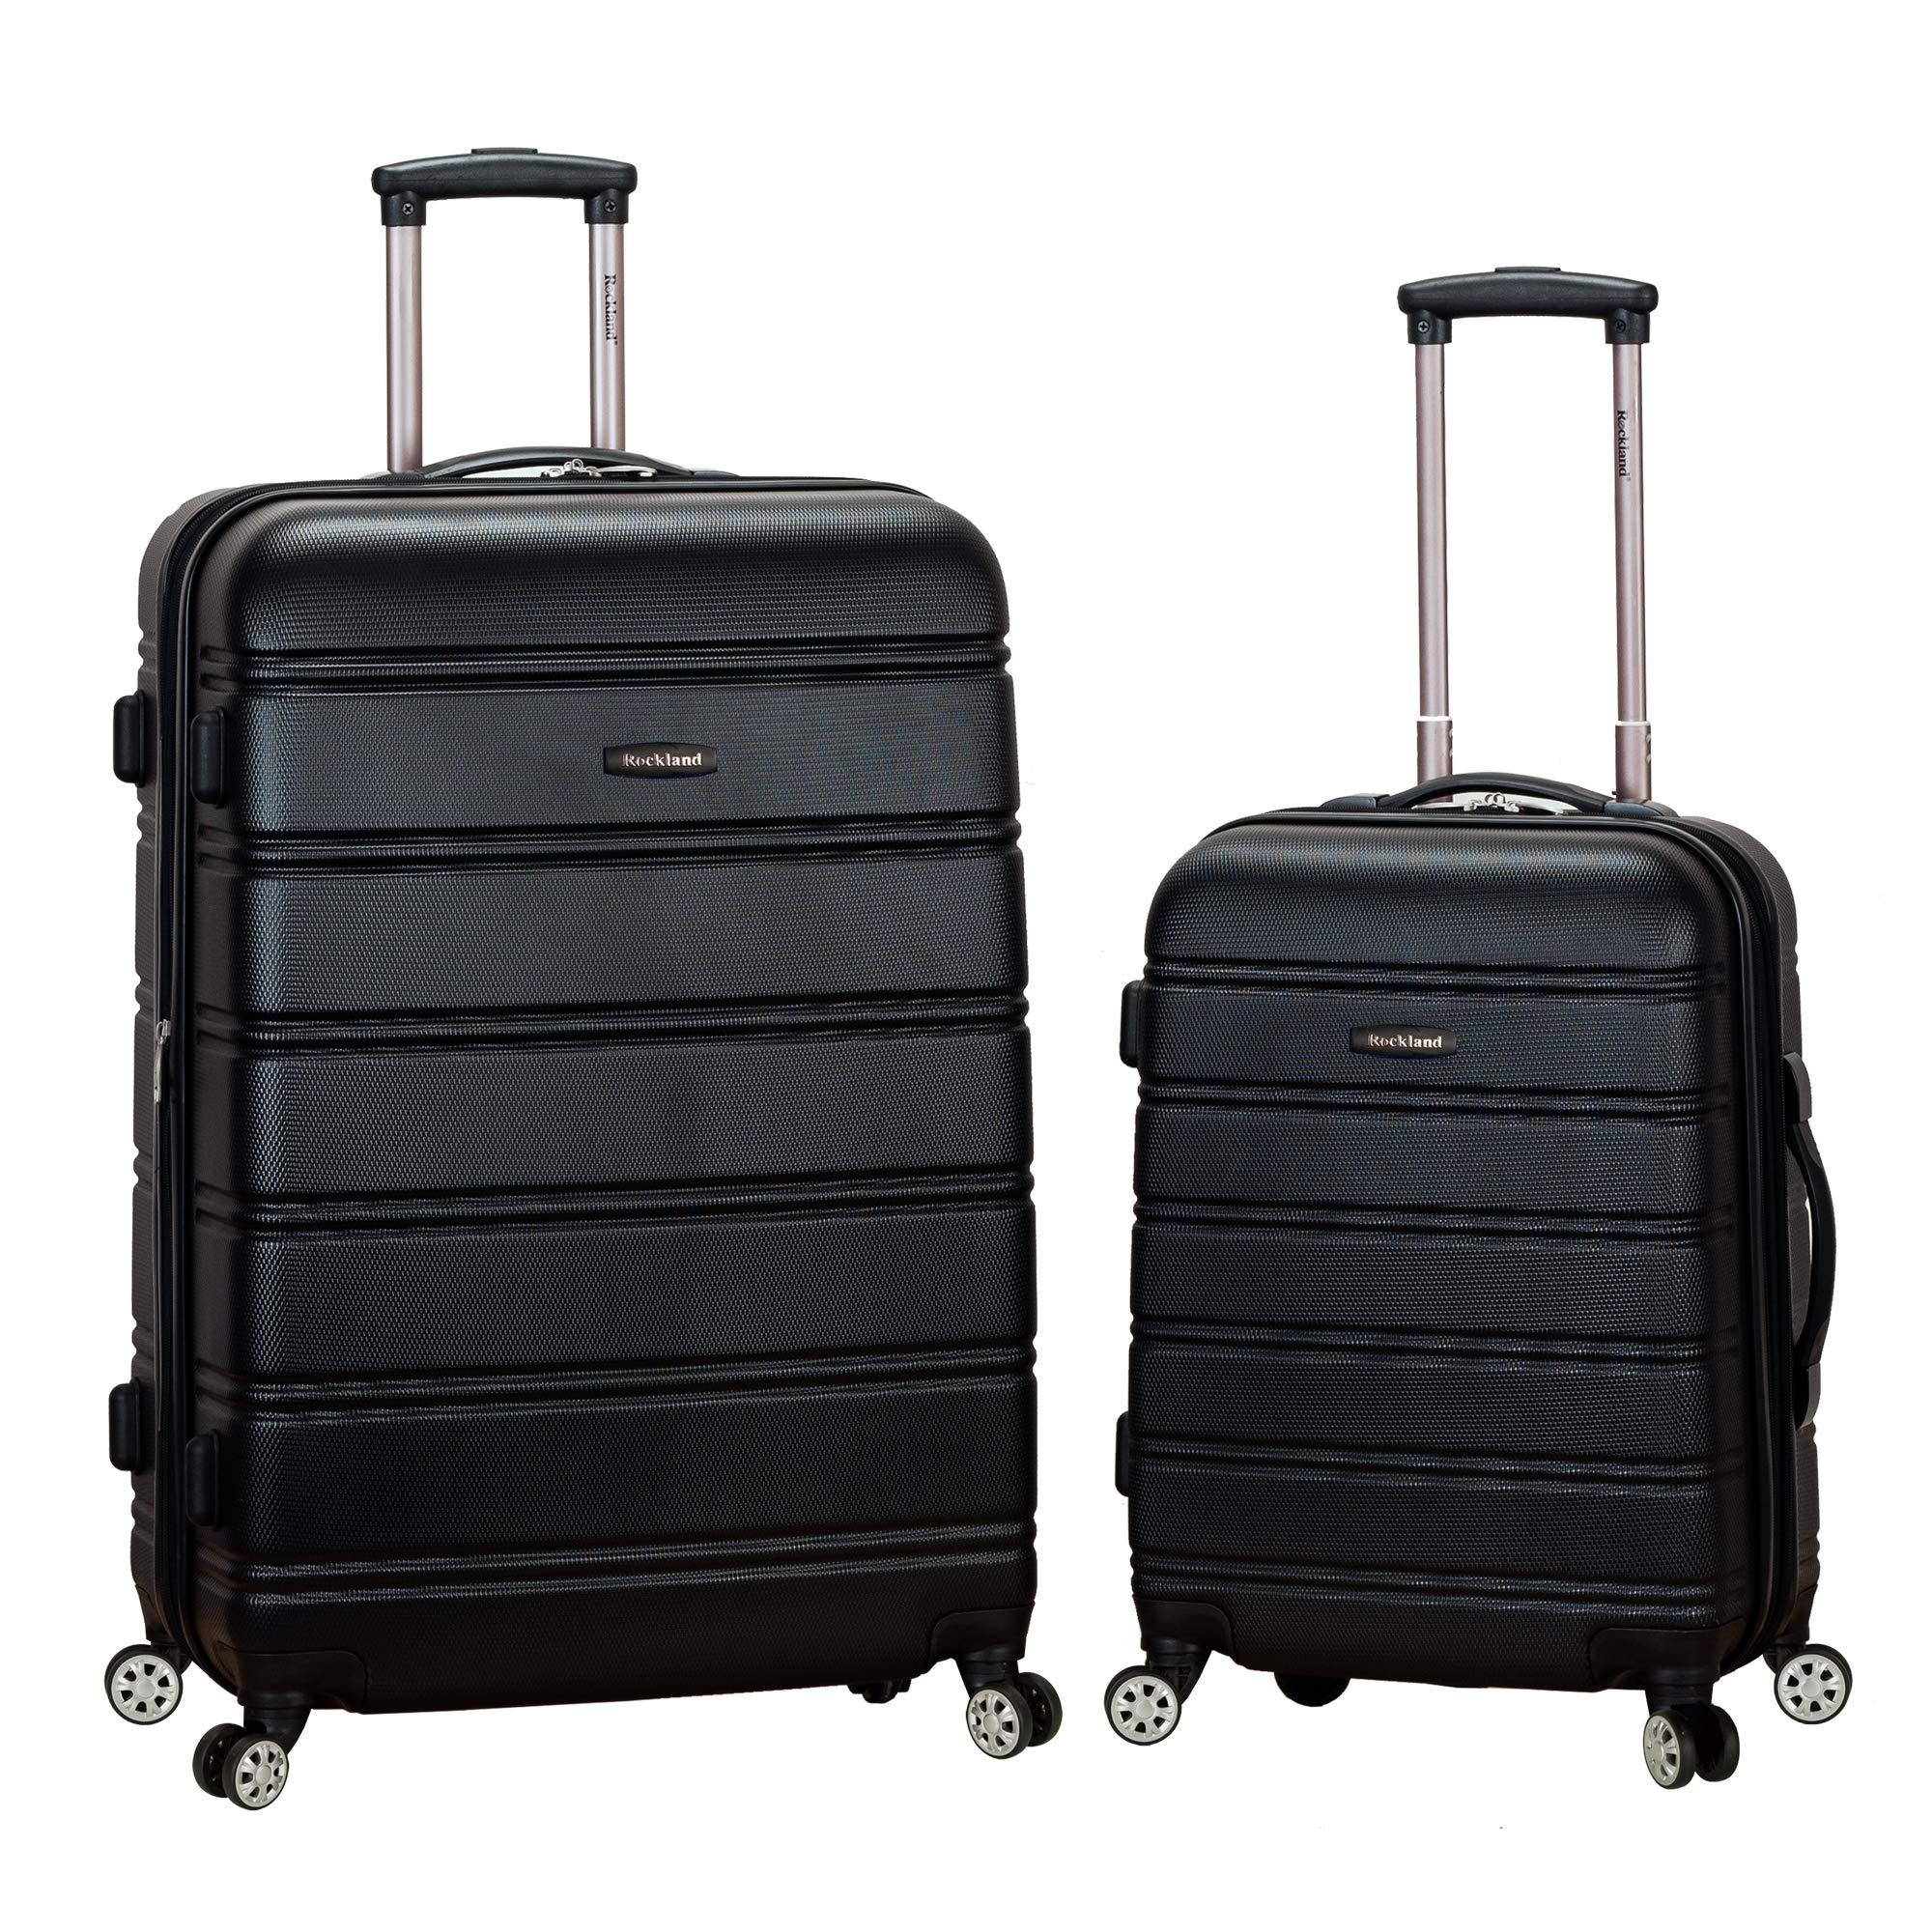 Rockland Luggage Piece Expandable Spinner